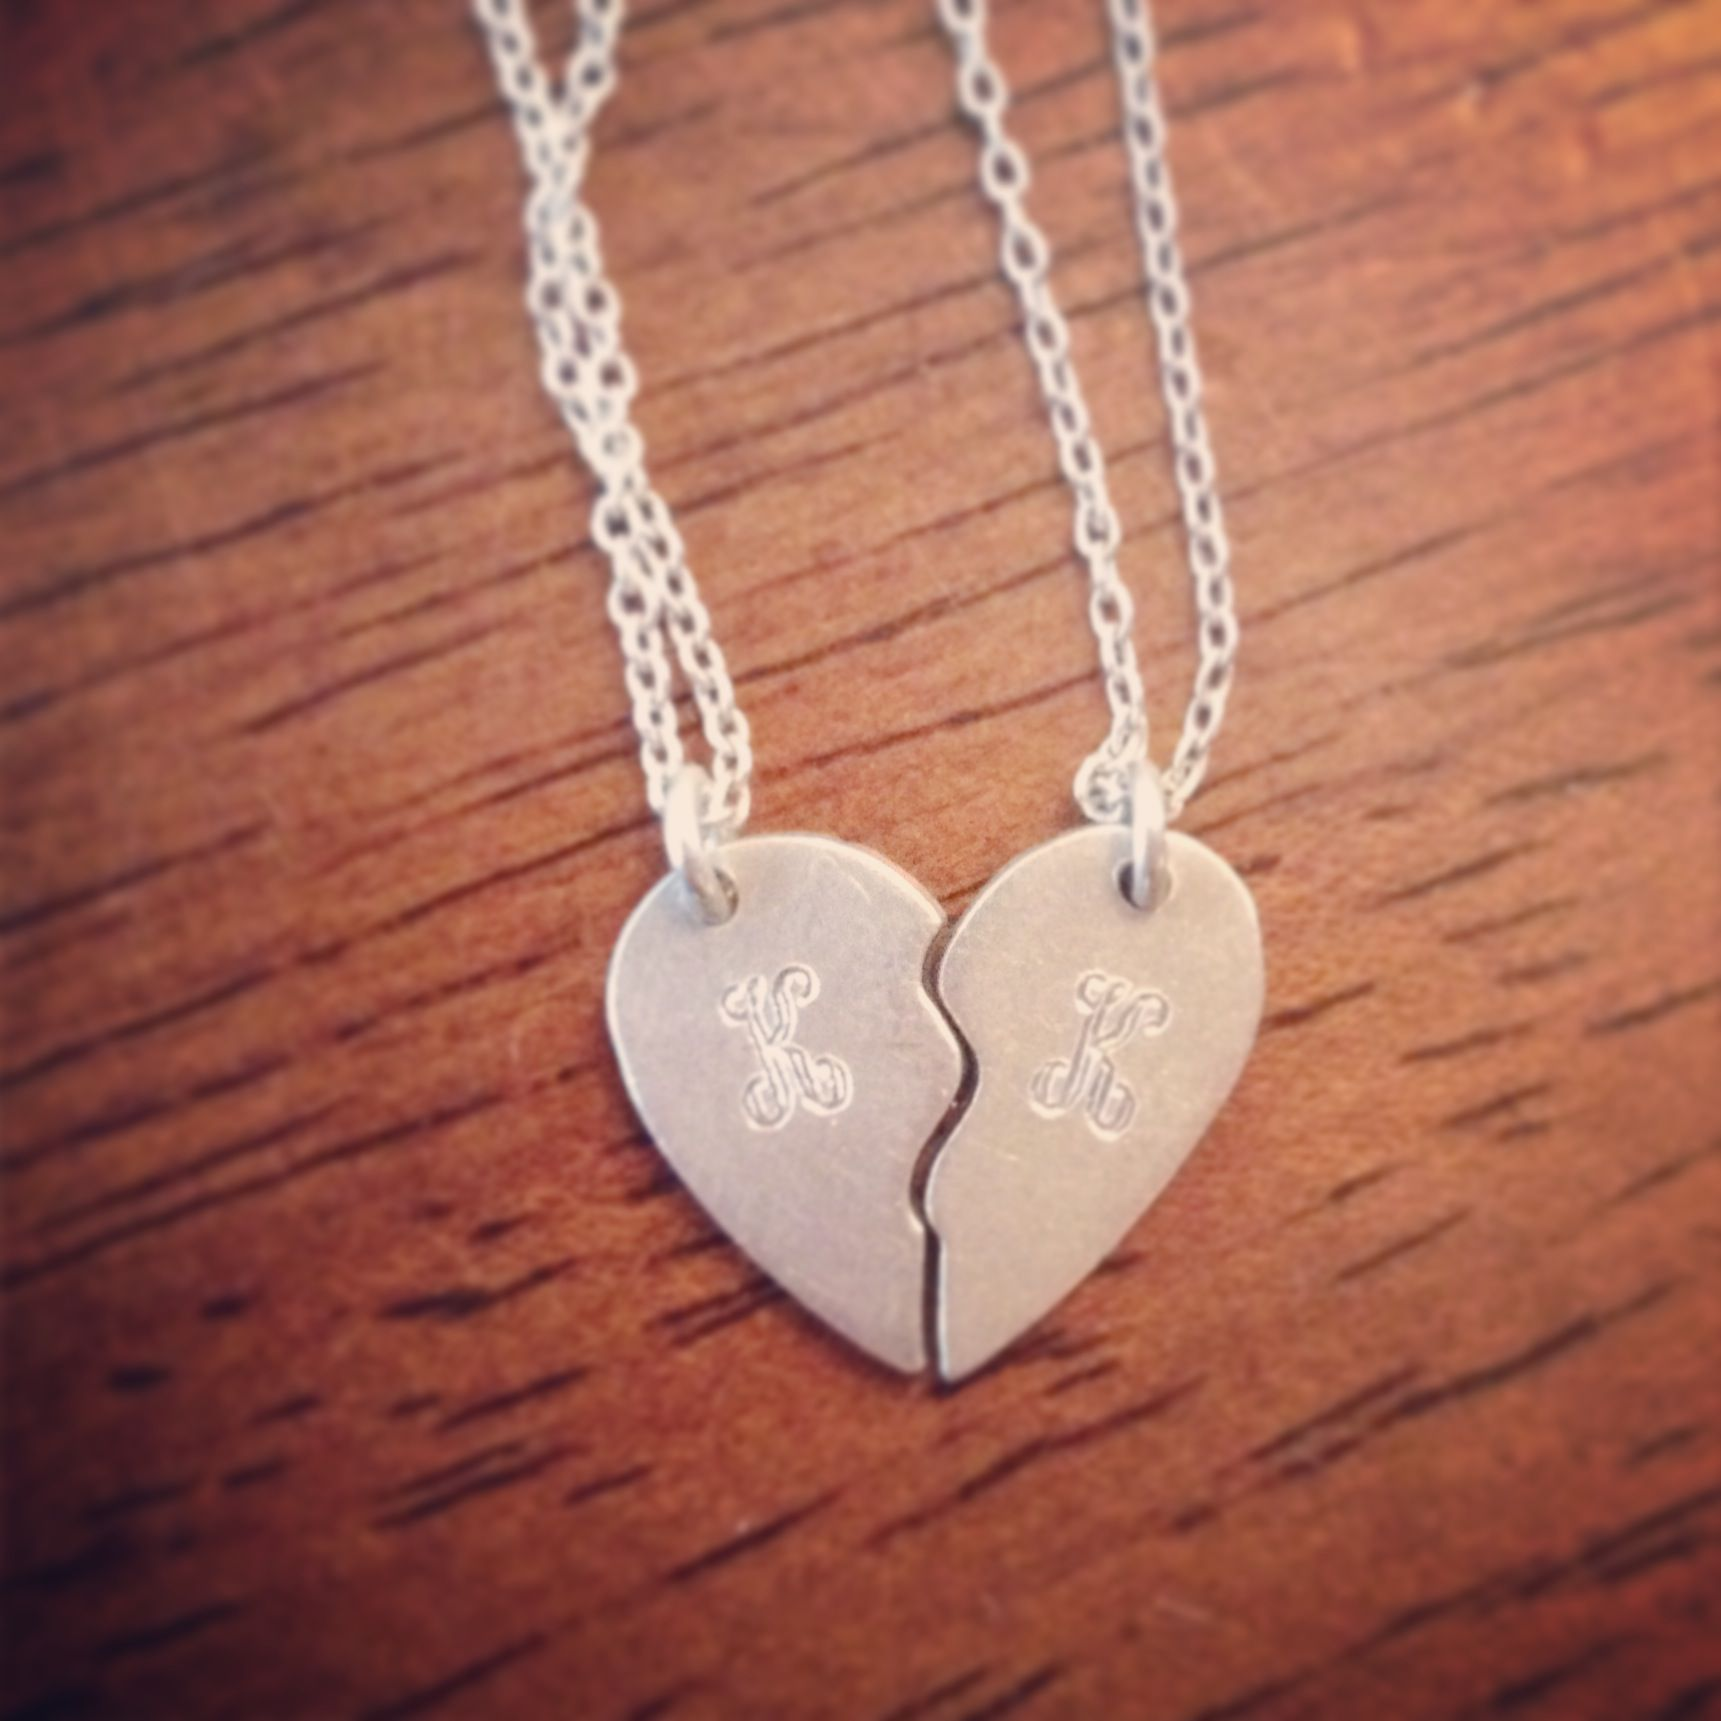 My Personal Engraved Relationship Necklaces. K + K | Necklaces ...